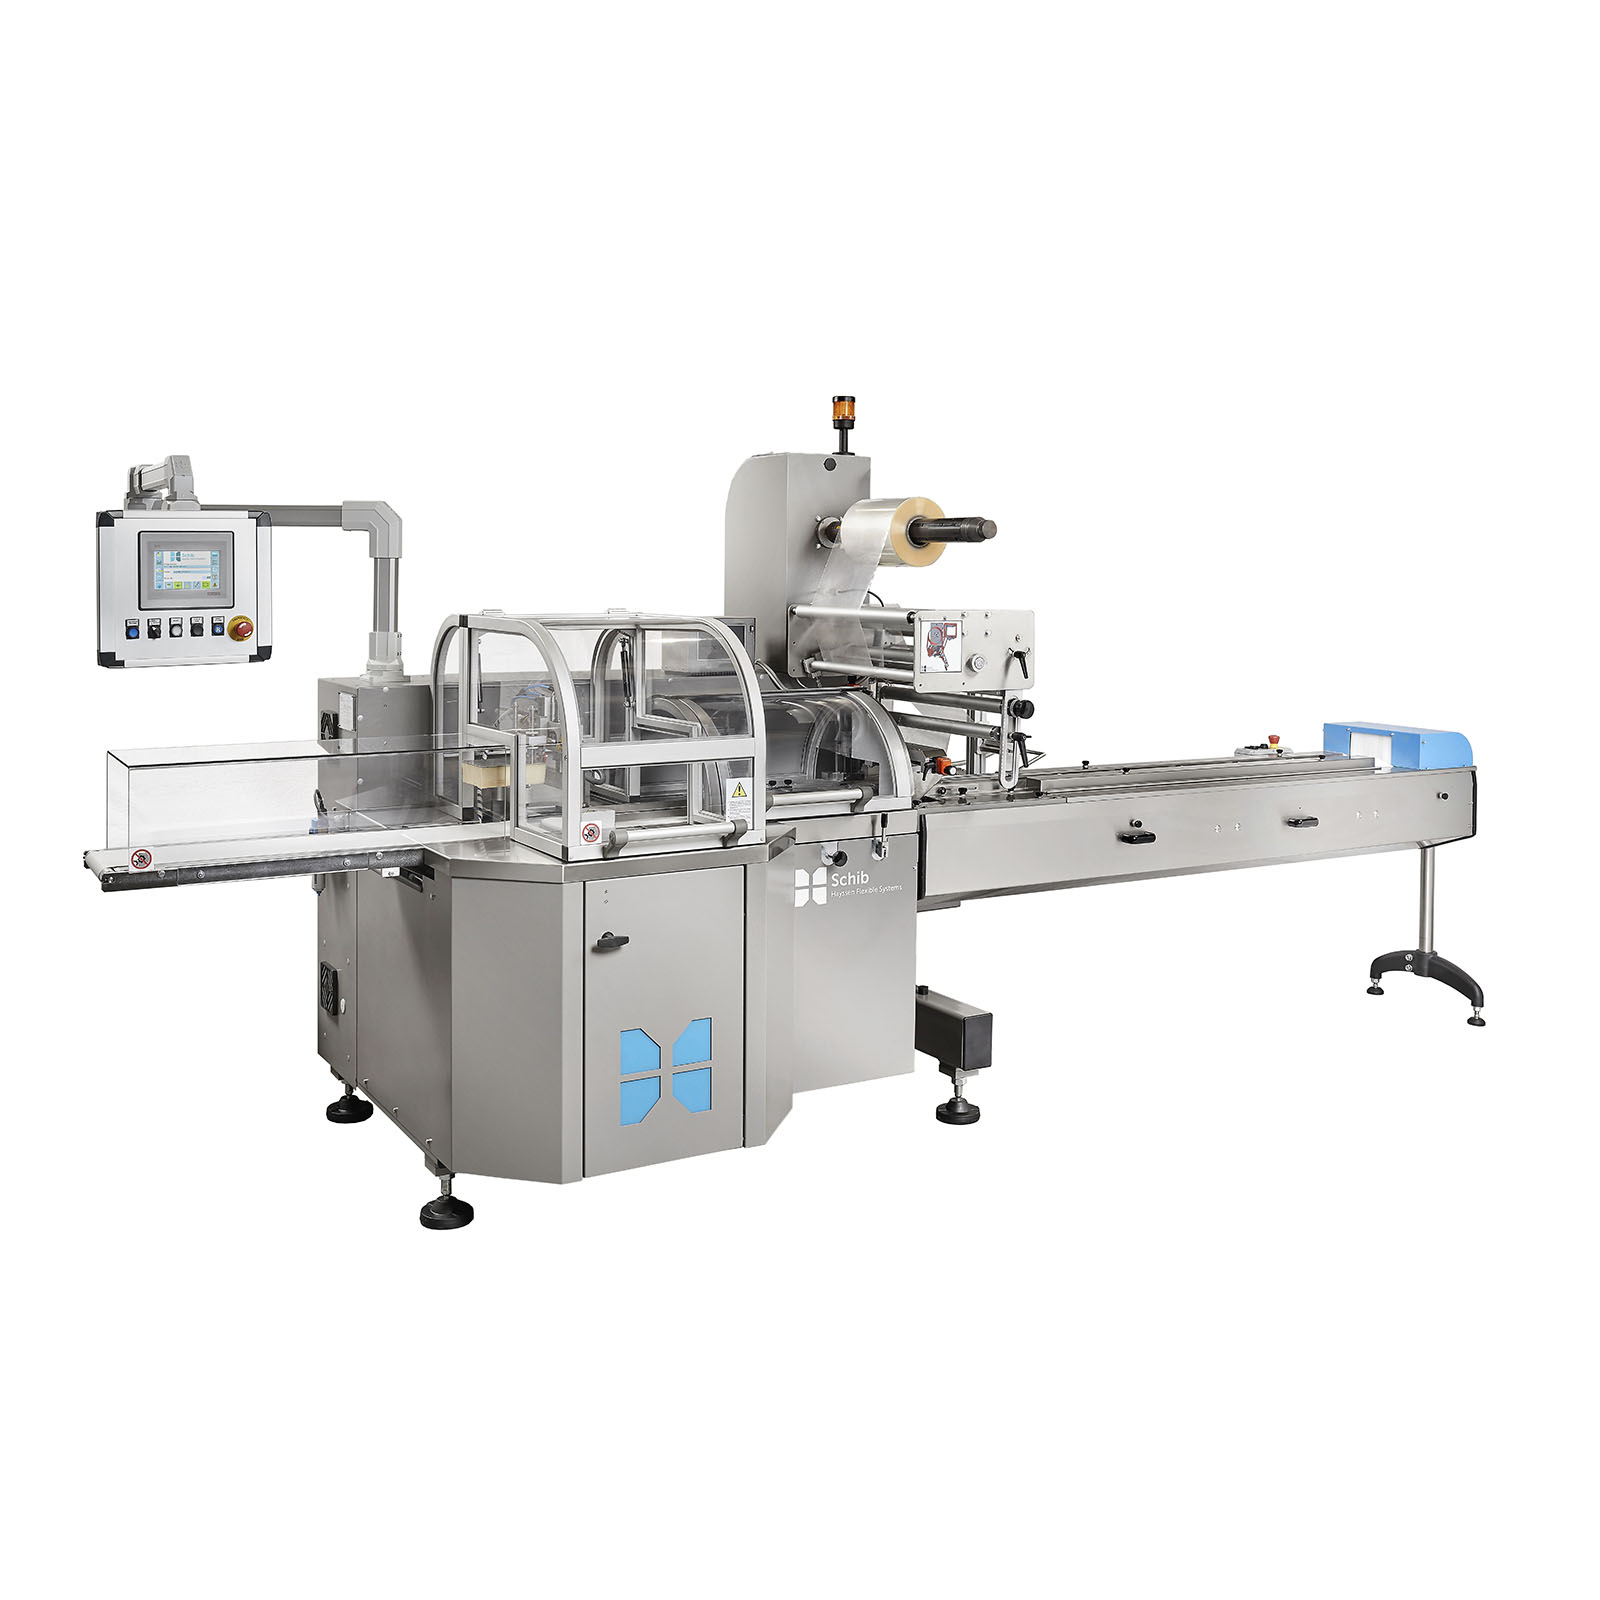 Flowpackmachine CO50TG